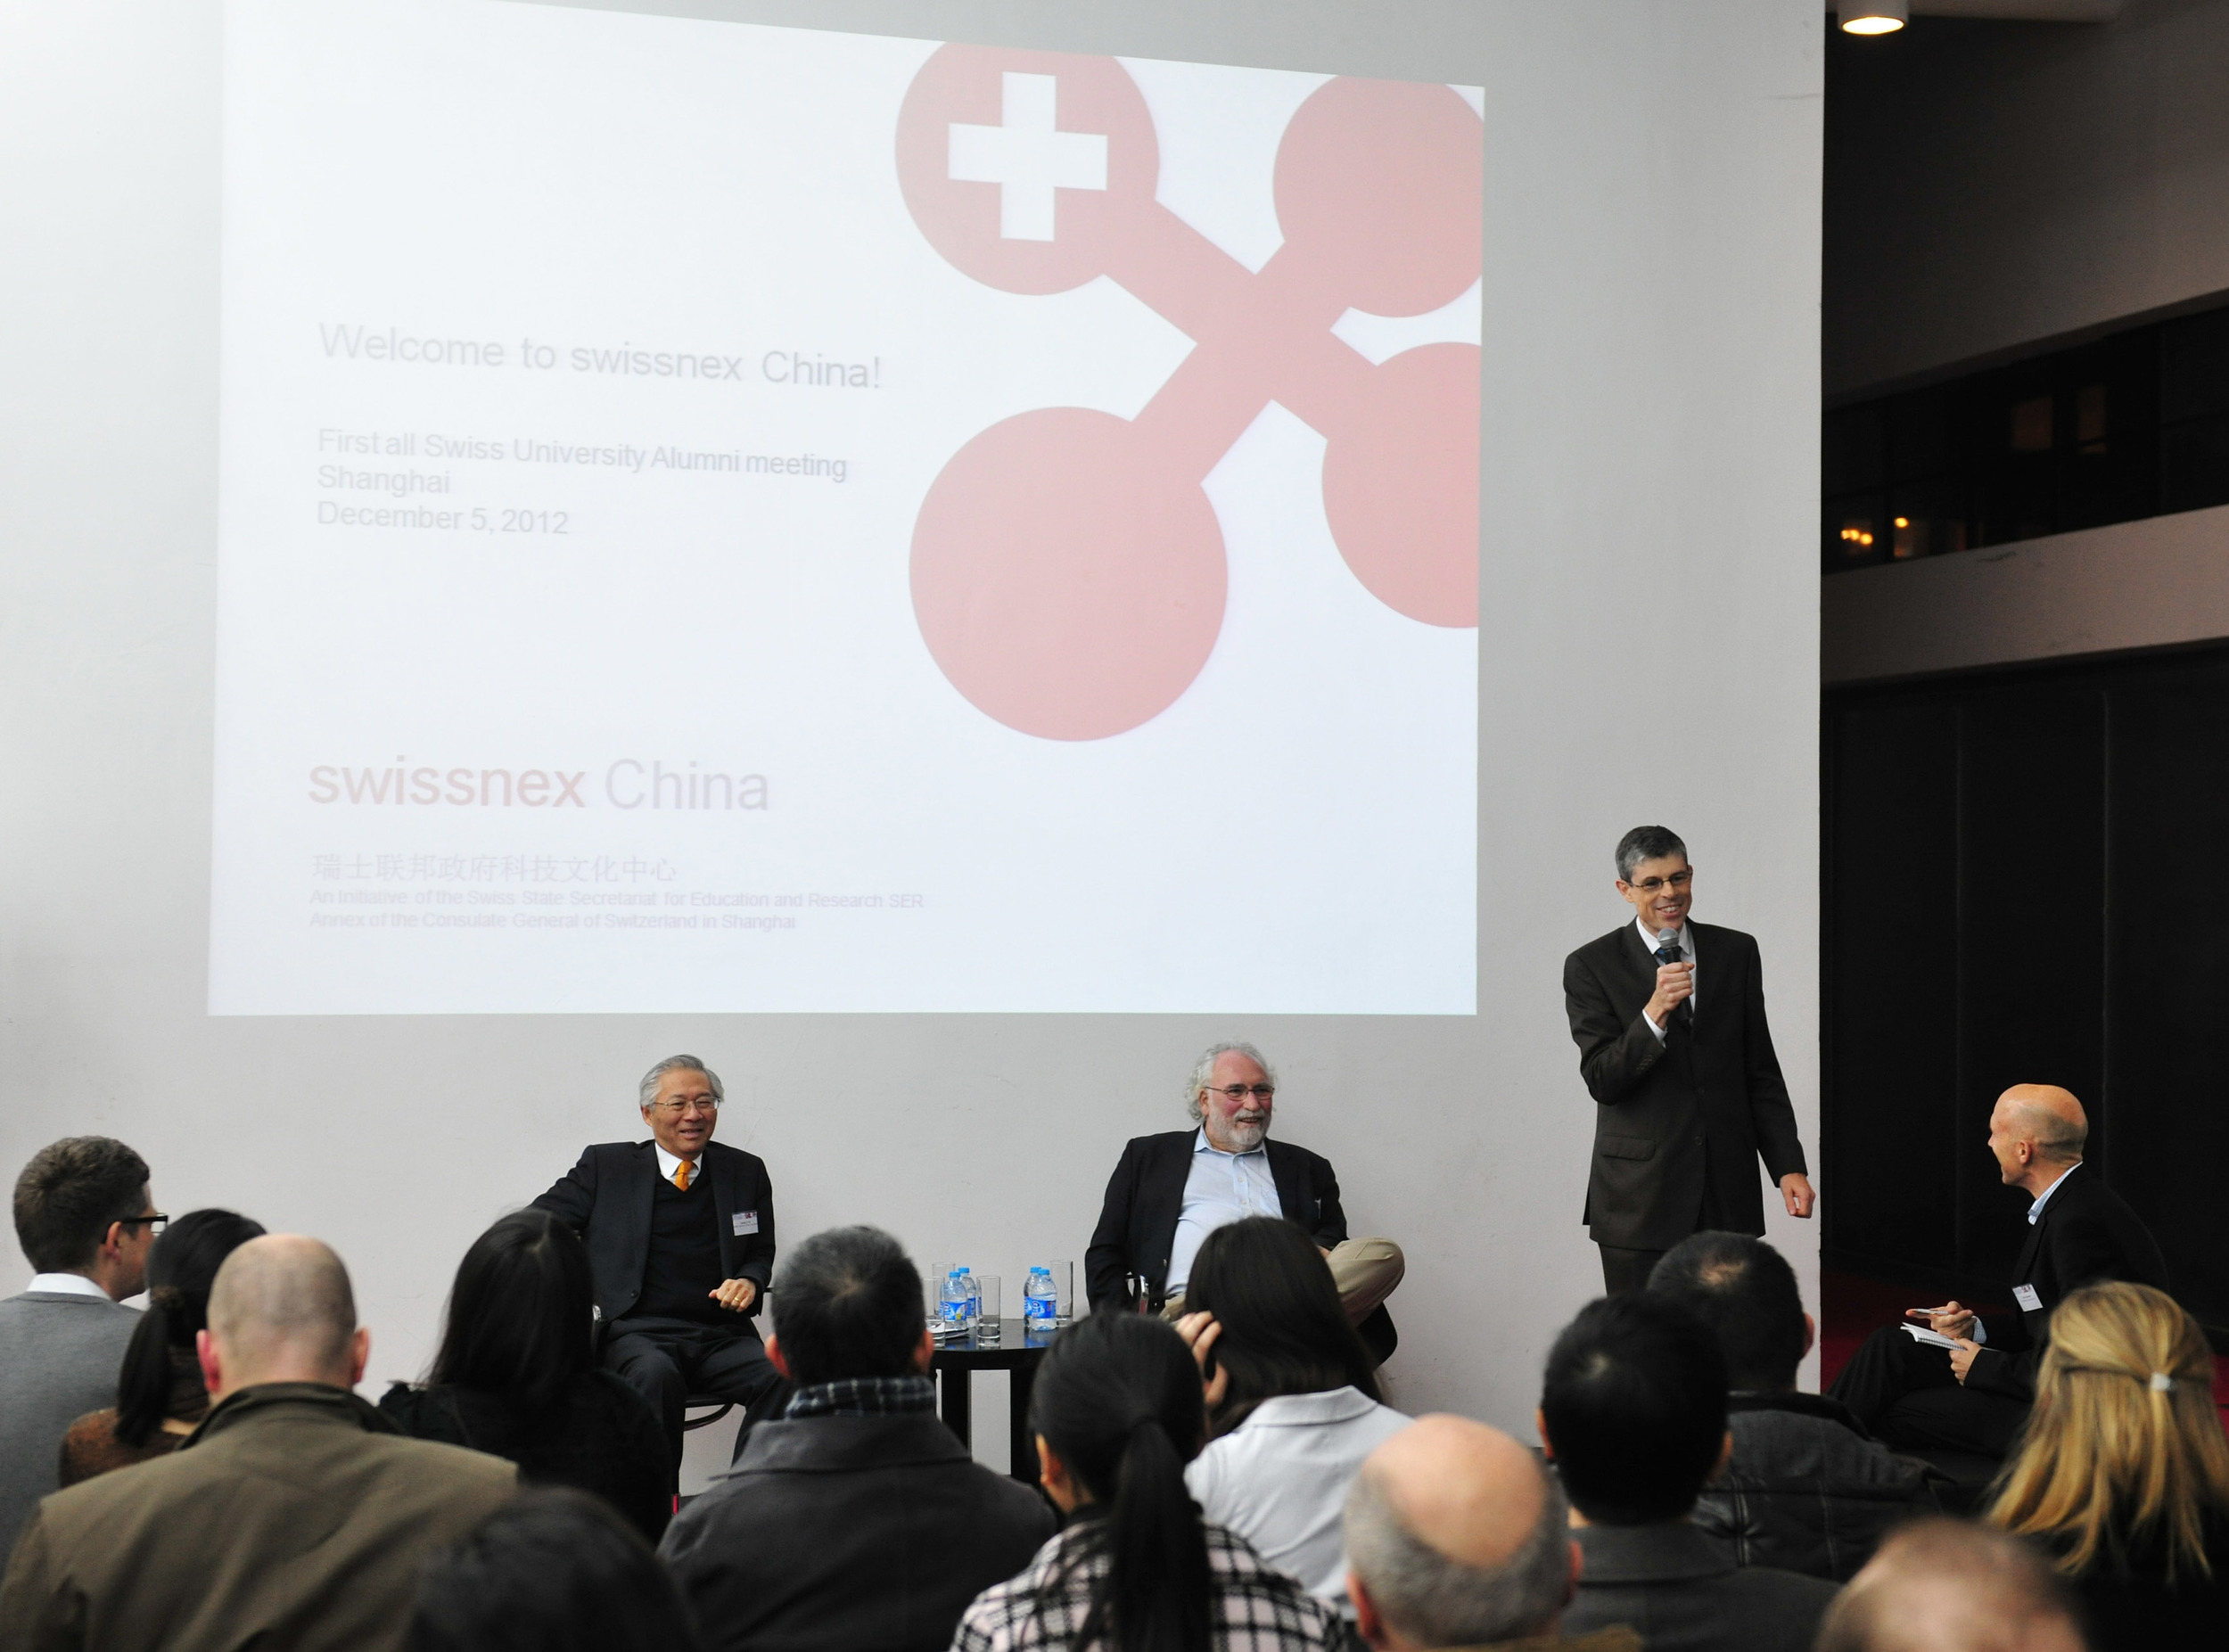 L-R, George S. Yip,  Co-Director (CEIBS Centre on China Innovation), Prof. Jean-Pierre Lehmann (Professor IMD Lausanne), Heinrich Schellenberg, (Consul General of Switzerland)